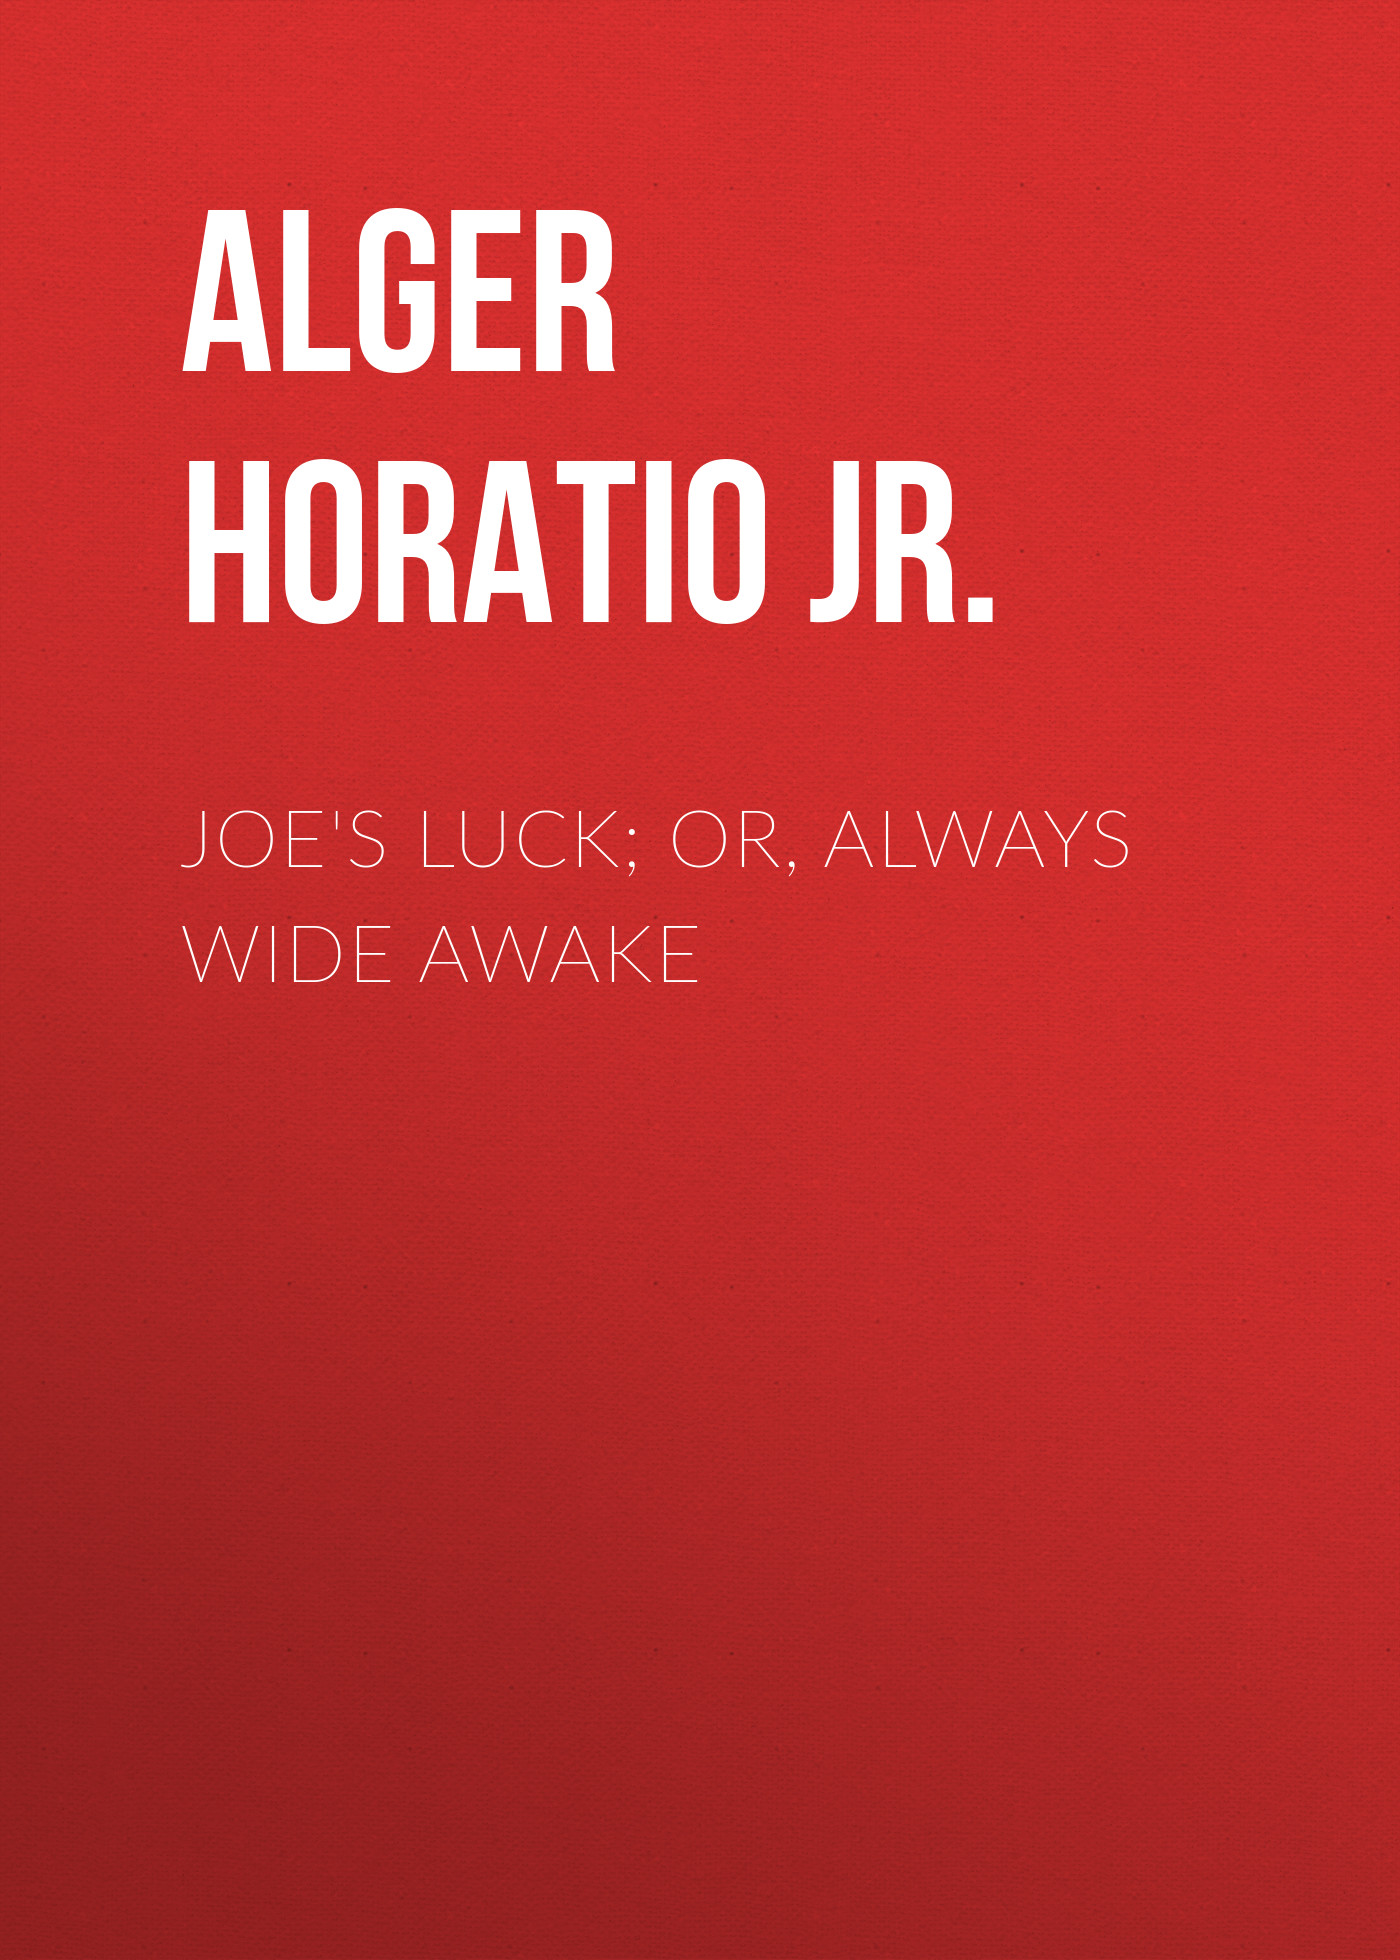 лучшая цена Alger Horatio Jr. Joe's Luck; Or, Always Wide Awake